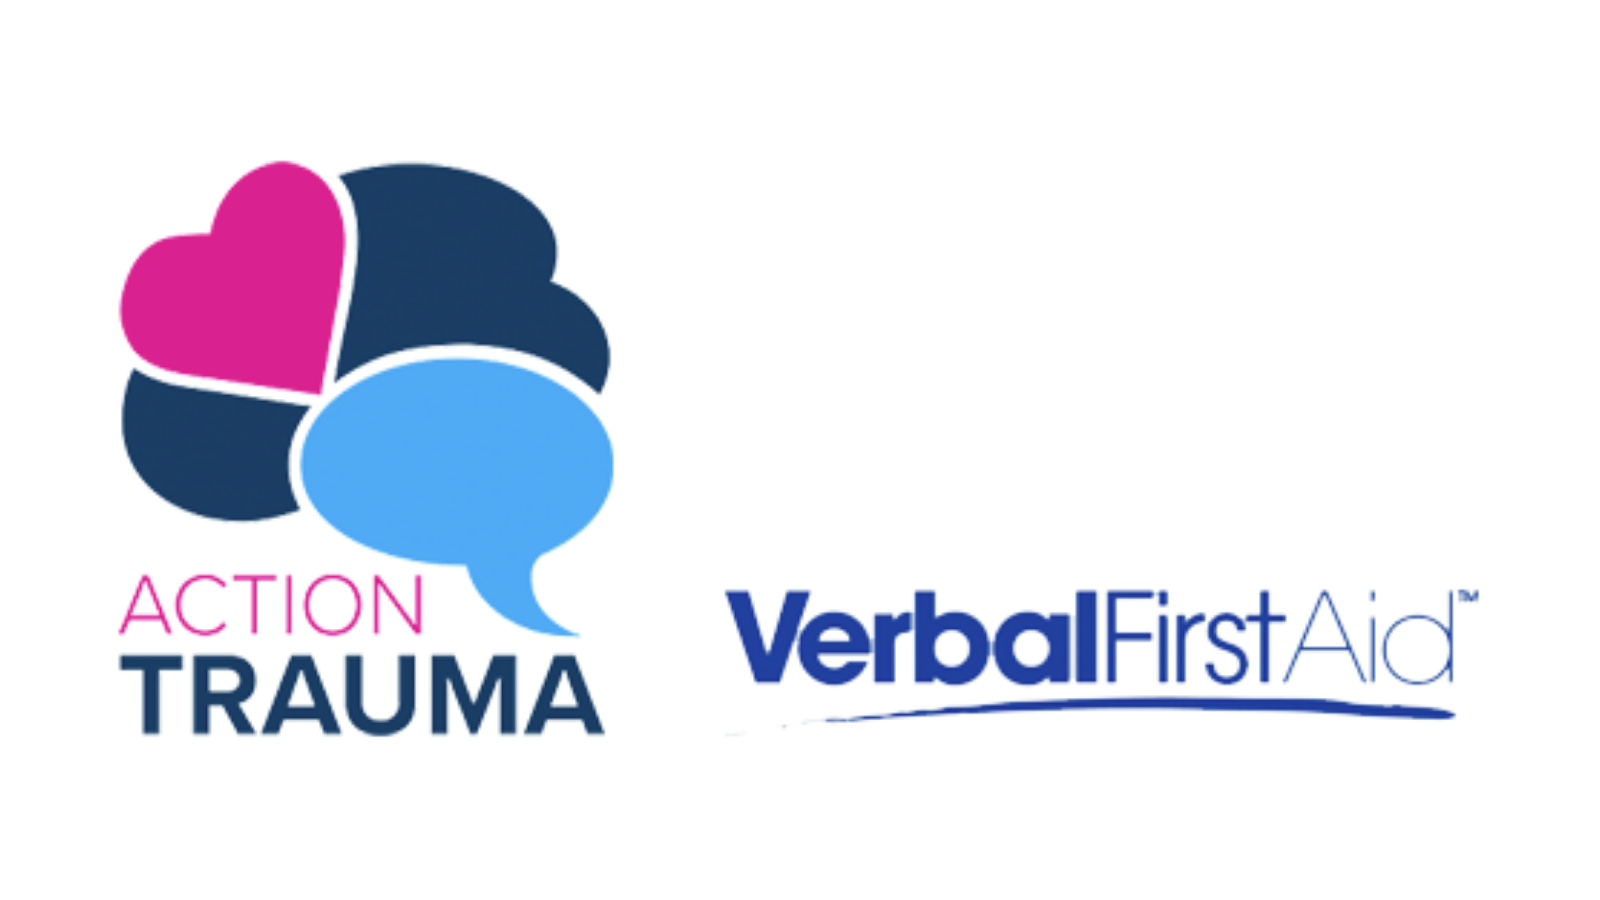 Action Trauma: Verbal First Aid™ with Judith Prager